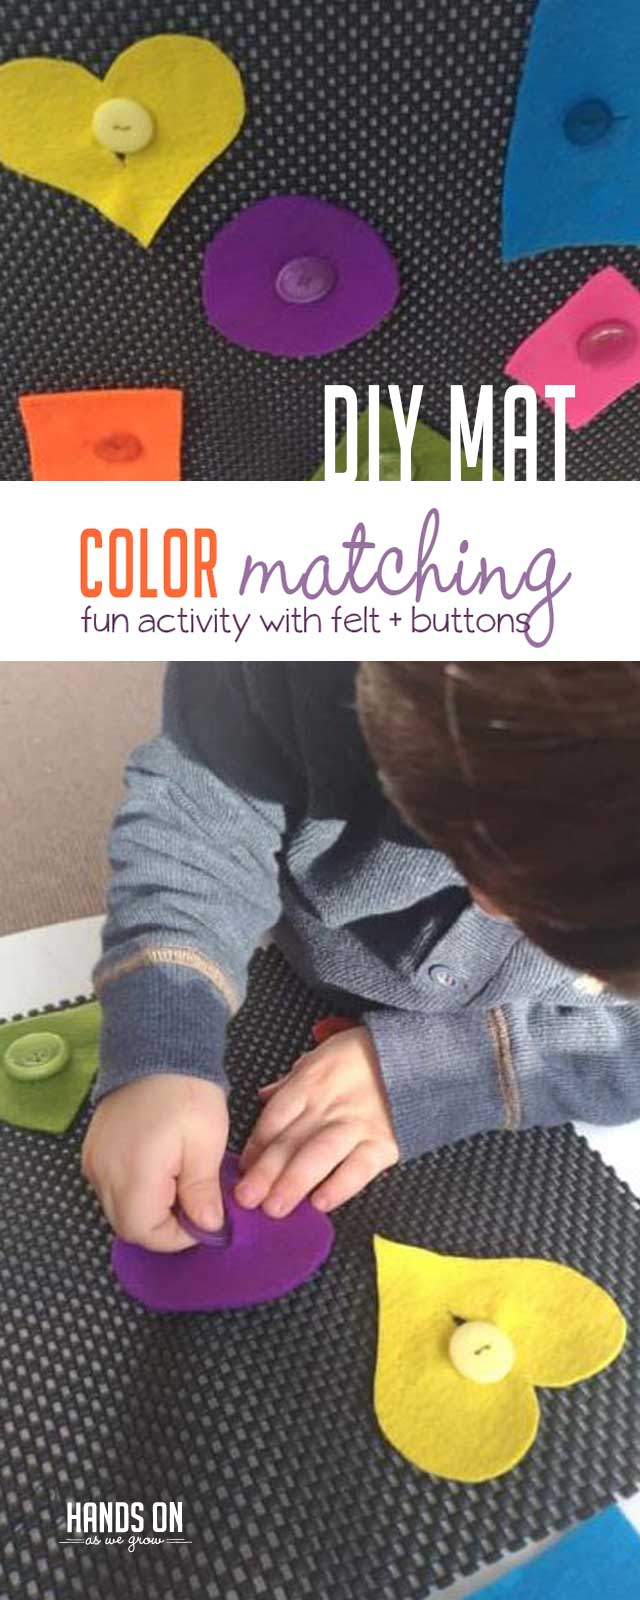 Practice color matching, shape names, and buttoning skills with a DIY color matching mat. Perfect for toddlers and younger preschoolers.